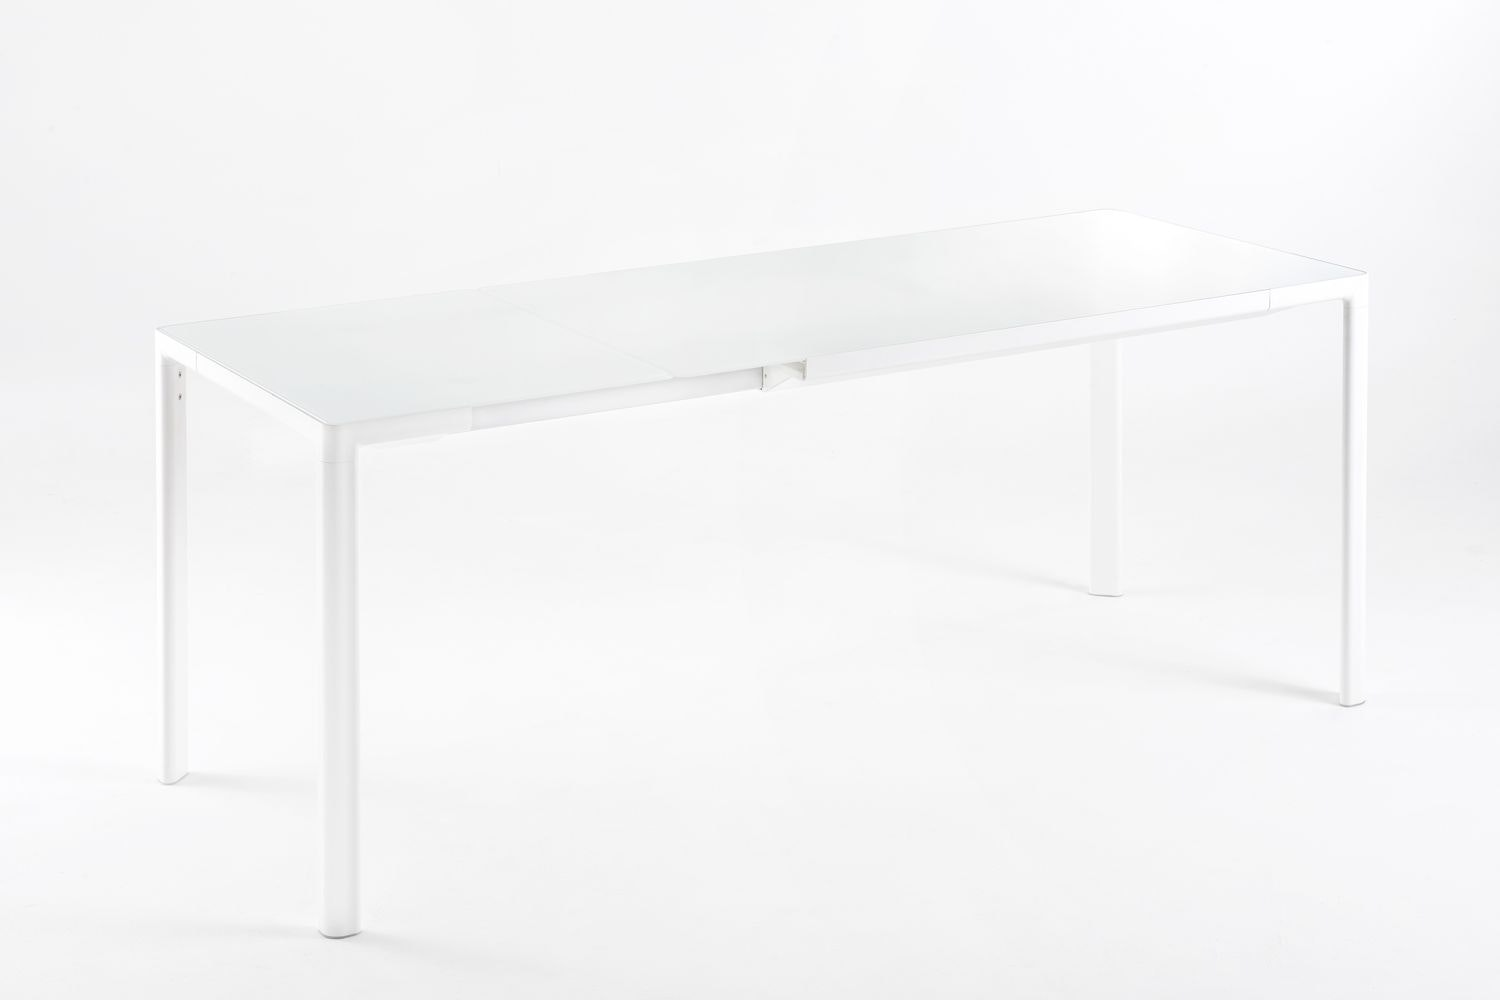 Zooom Extension Medium Table by Piero Lissoni for Kartell